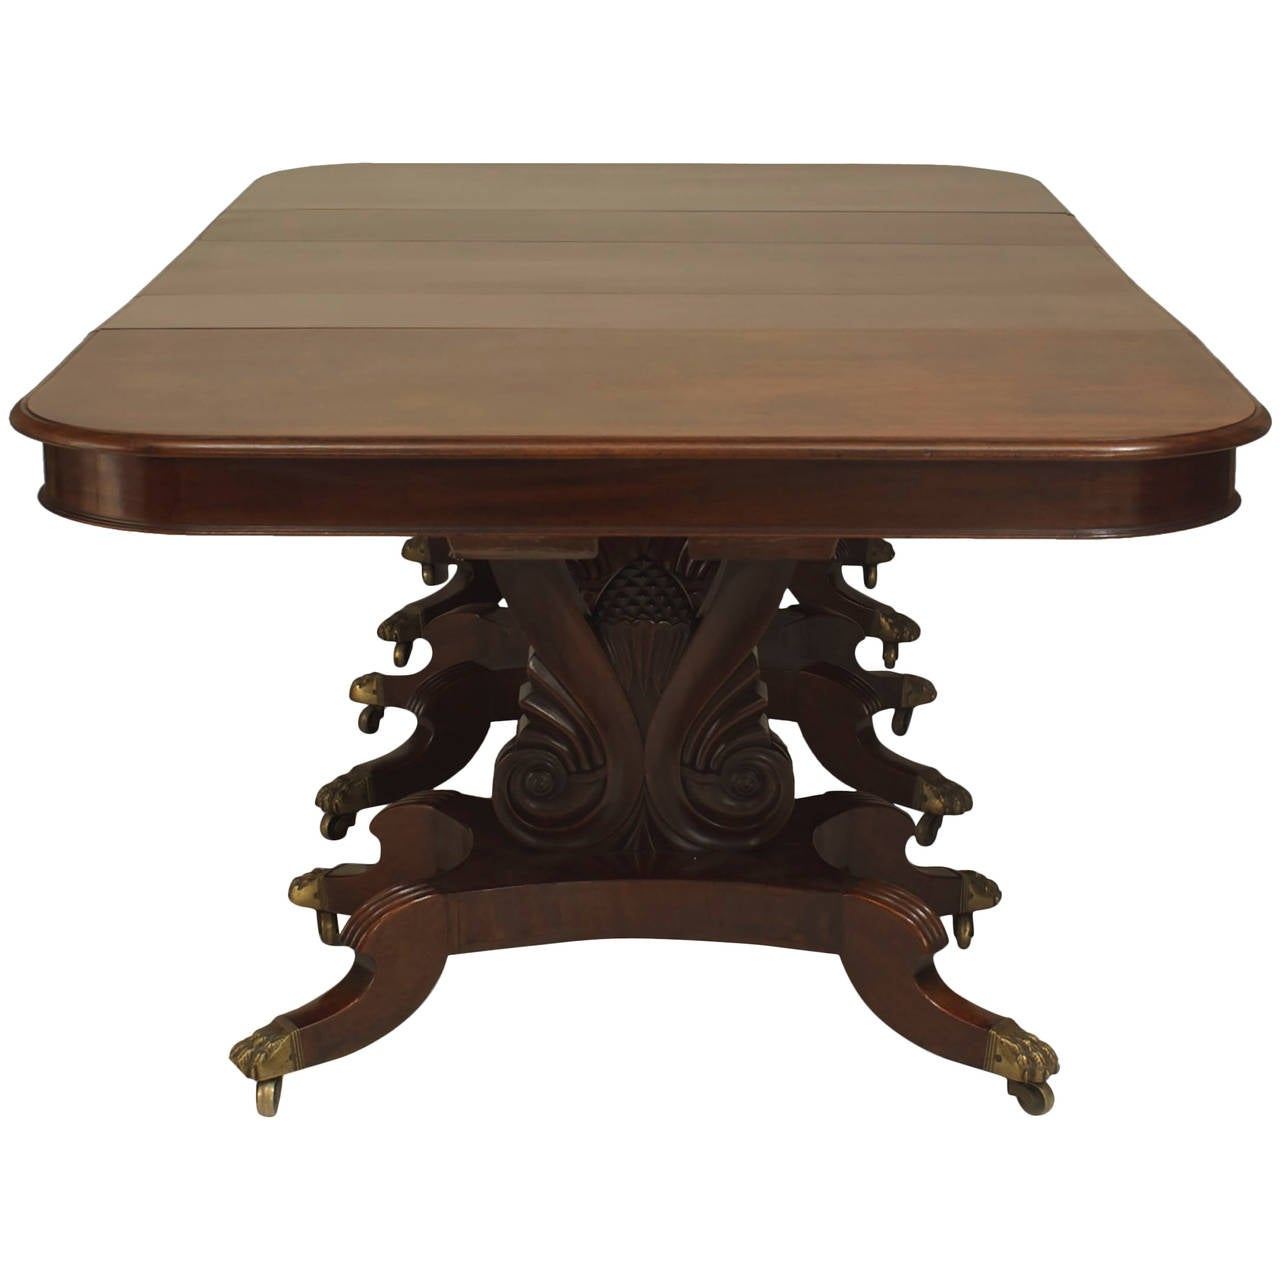 American empire extending mahogany dining table at 1stdibs for Dining room table 32 wide